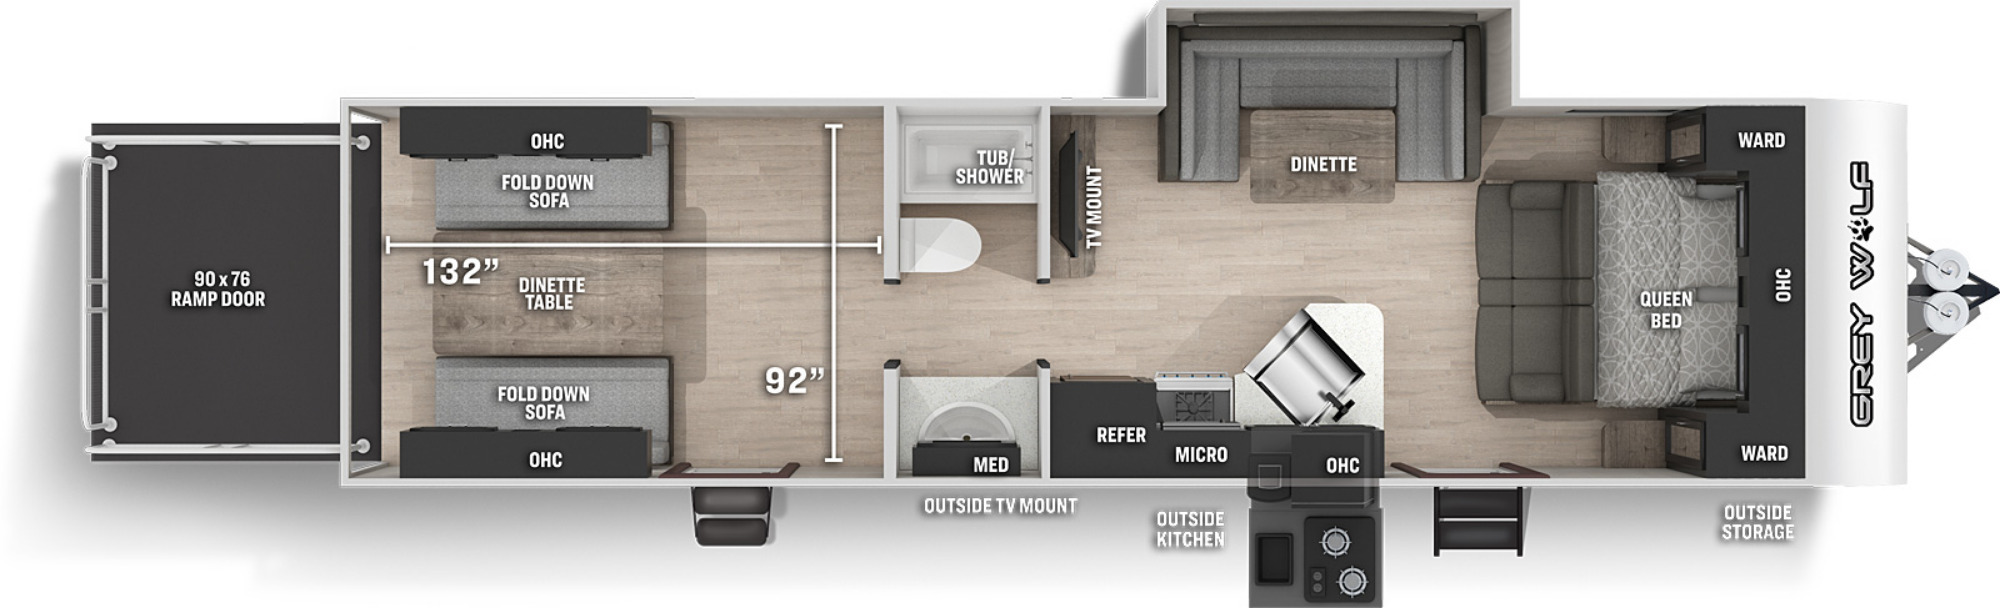 View Floor Plan for 2022 FOREST RIVER GREY WOLF 27RR